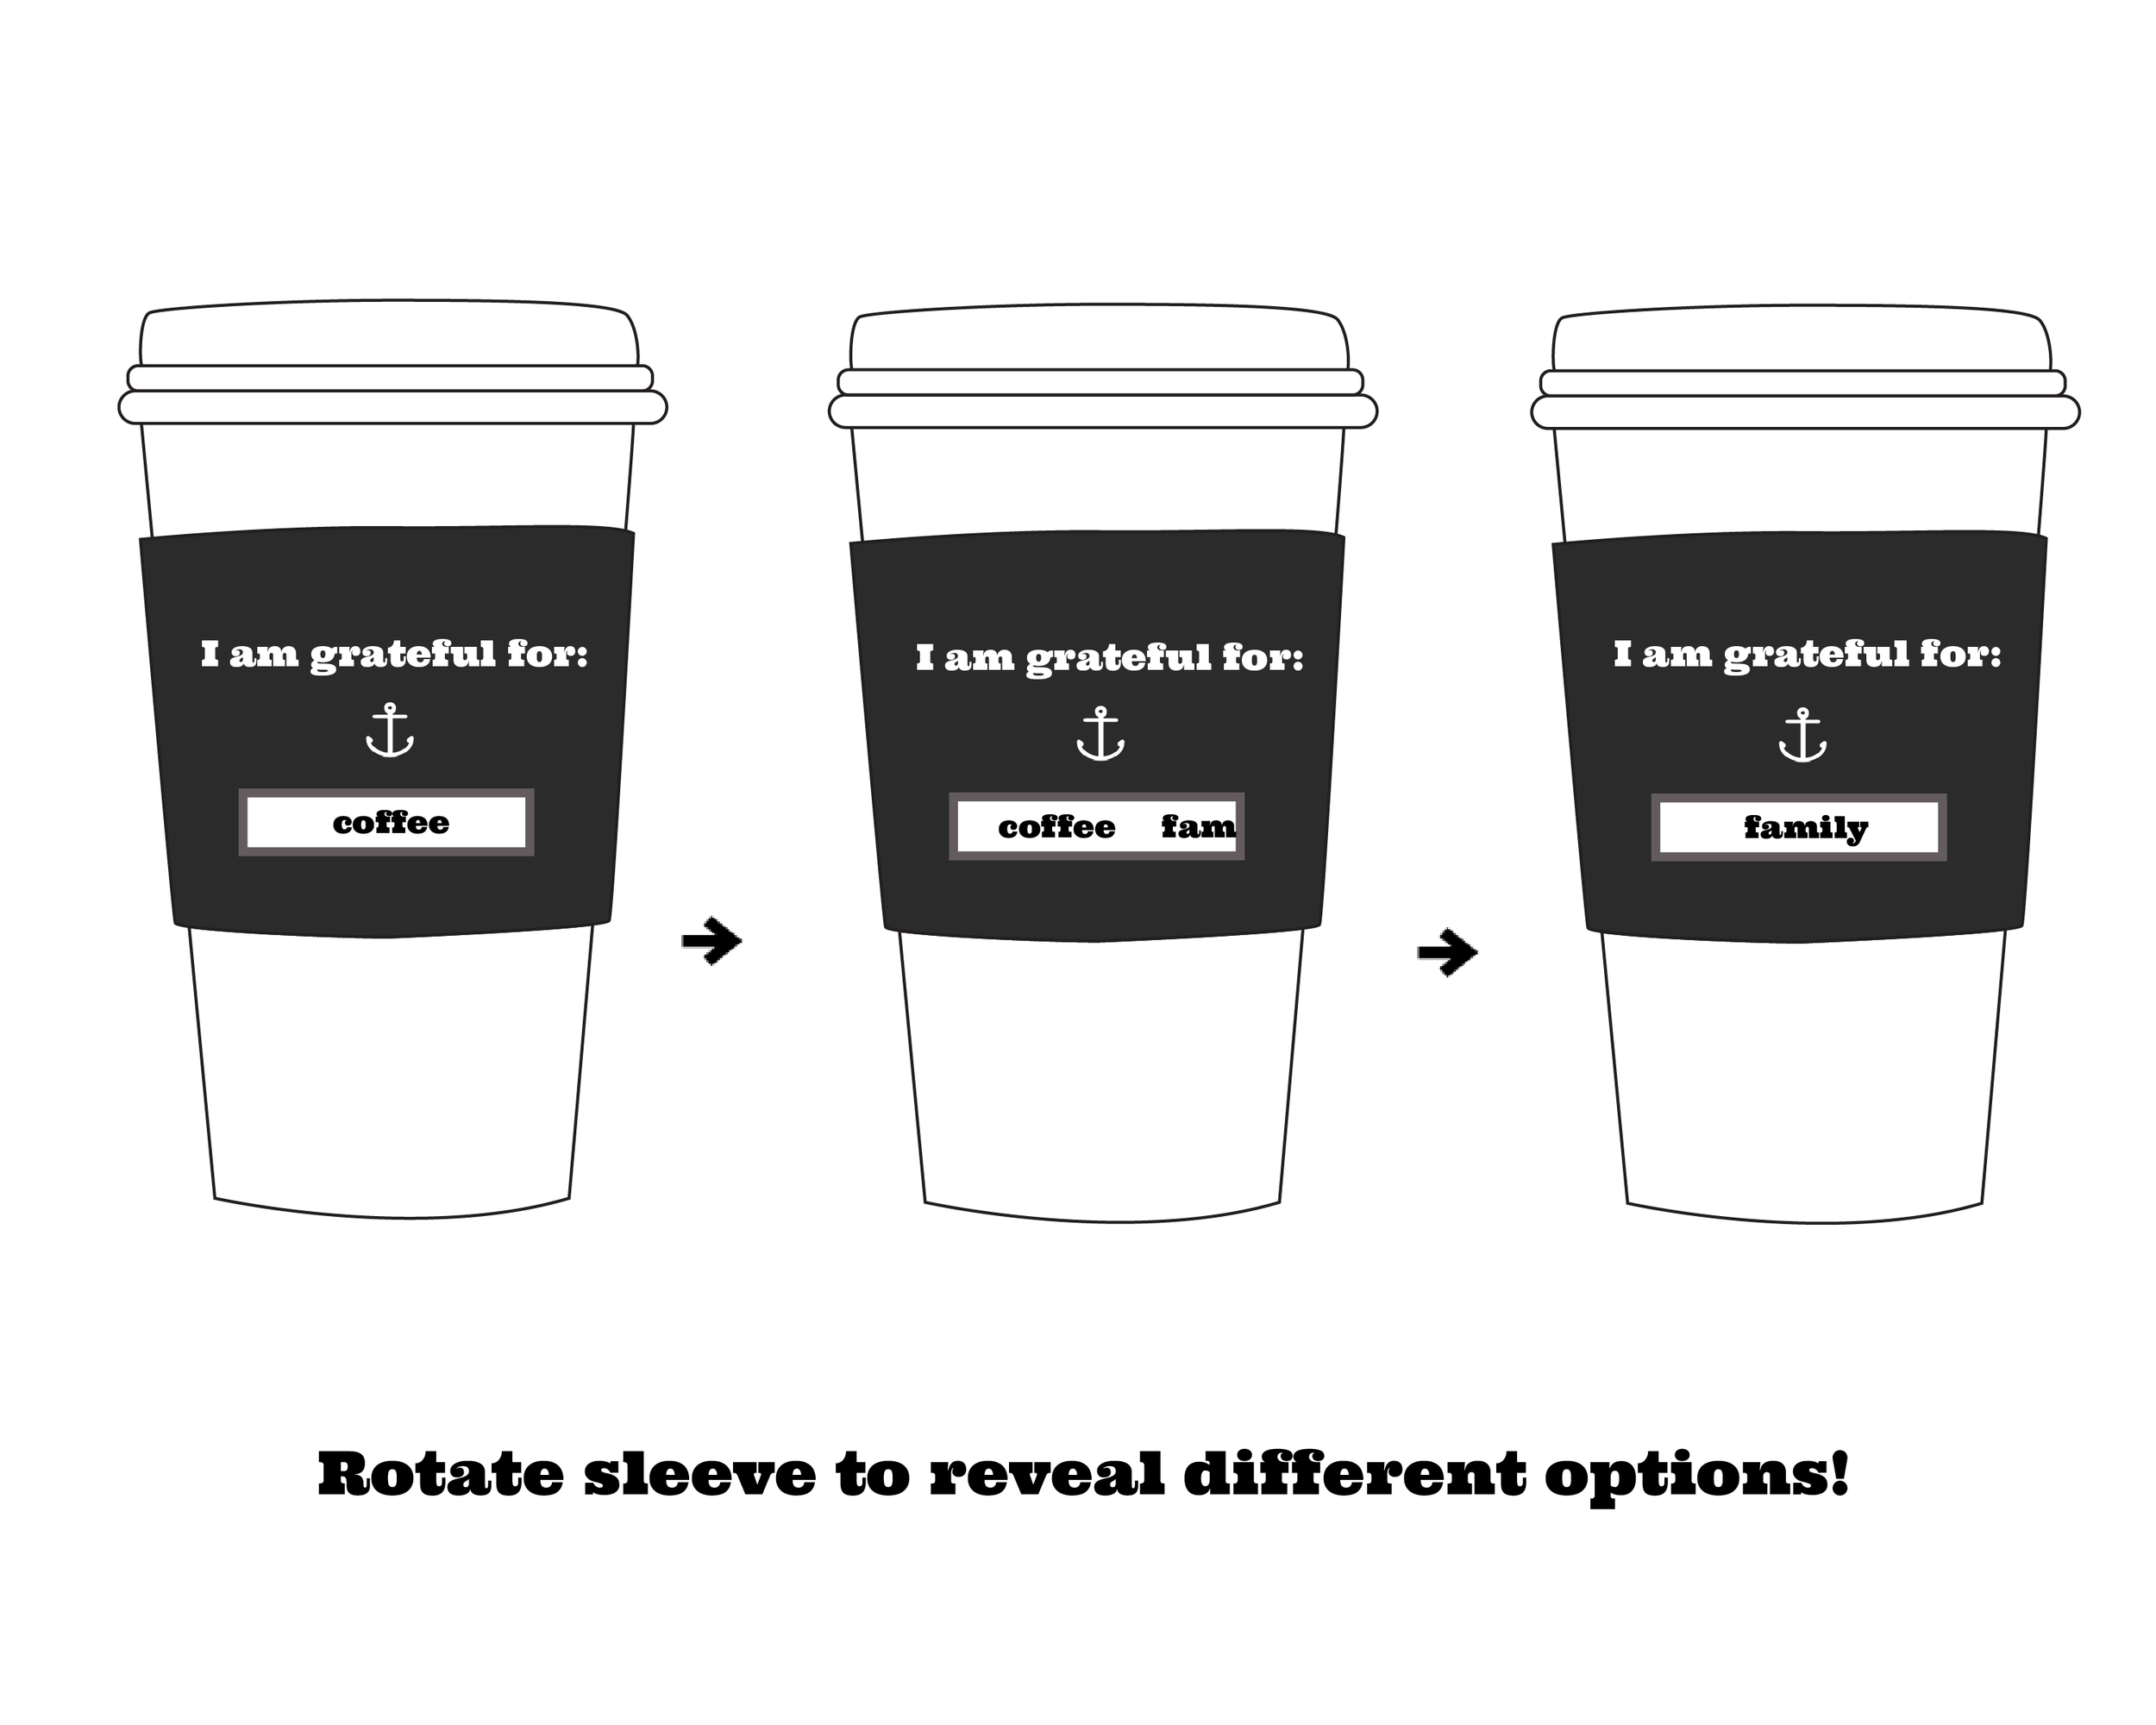 coffee-01 (1) (1).png